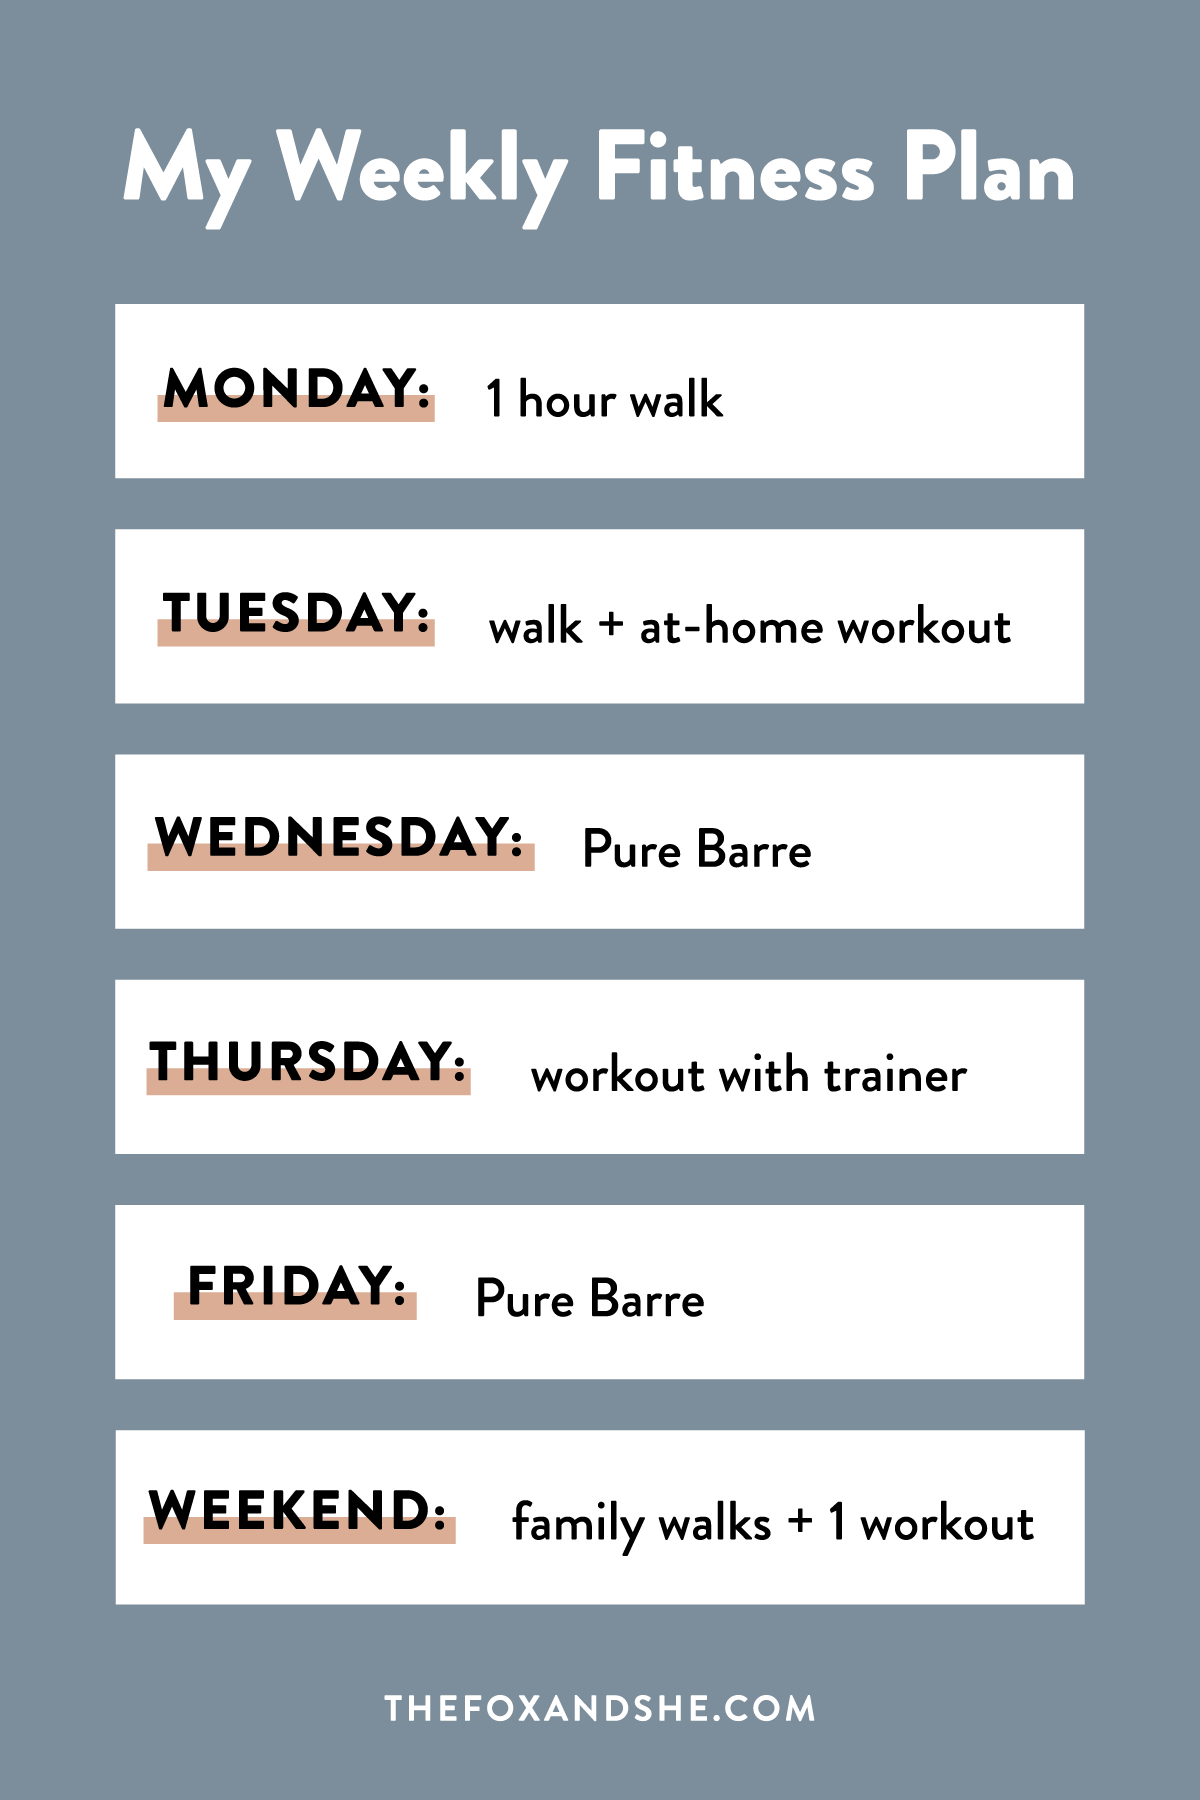 My Weekly Fitness Plan